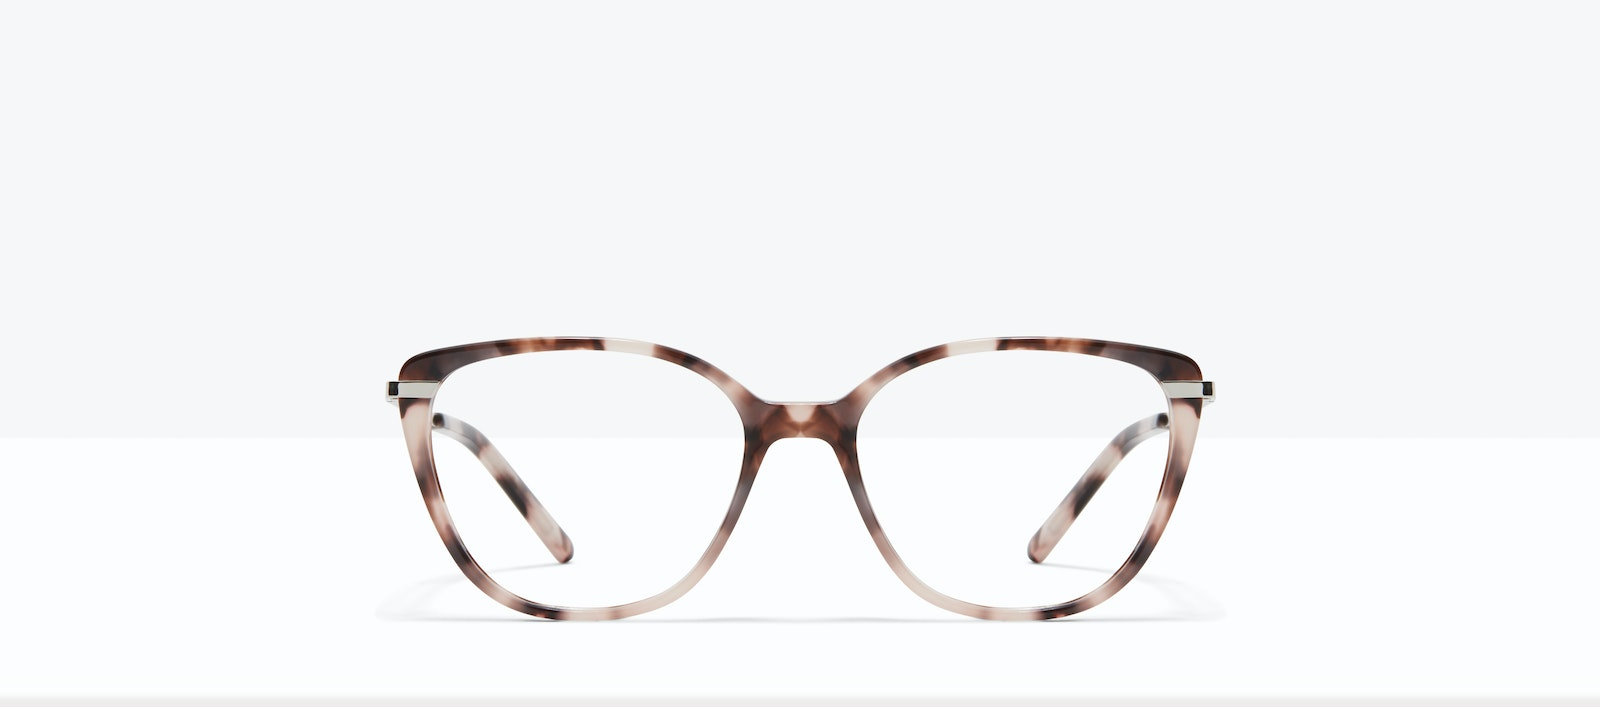 Affordable Fashion Glasses Rectangle Square Eyeglasses Women Illusion M Marbled Pink Front